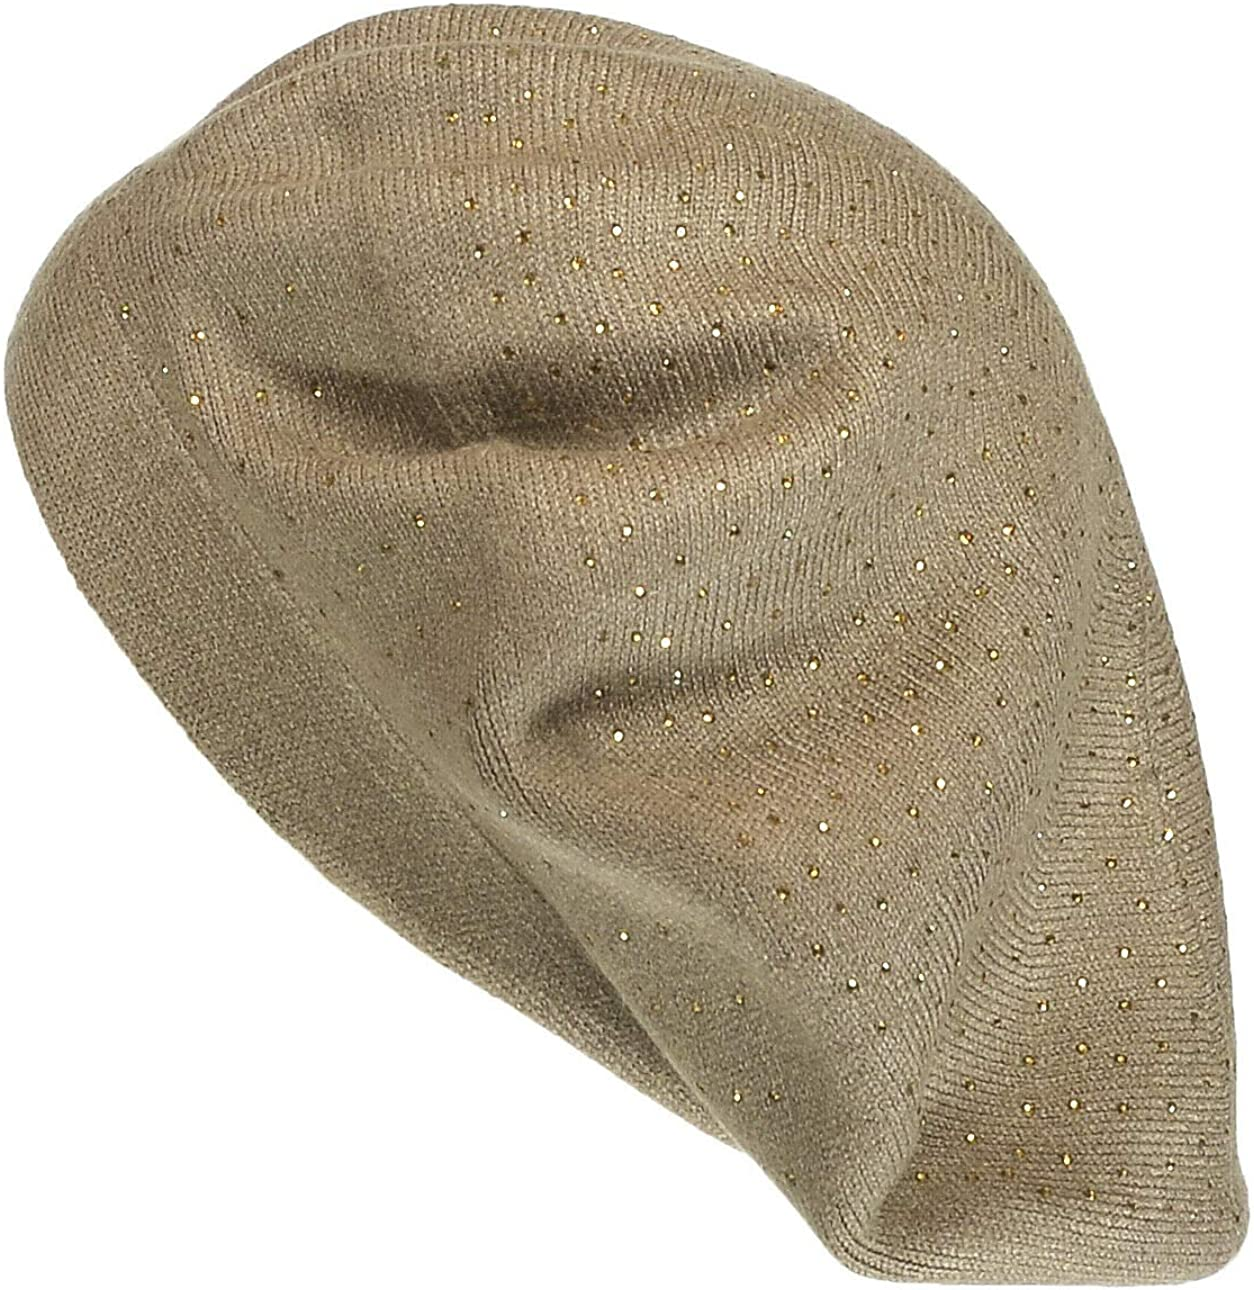 T Store Taupe Women's Double Layer Rhinestone Beret Cashmere Blend Soft Warmth Hat #APTM